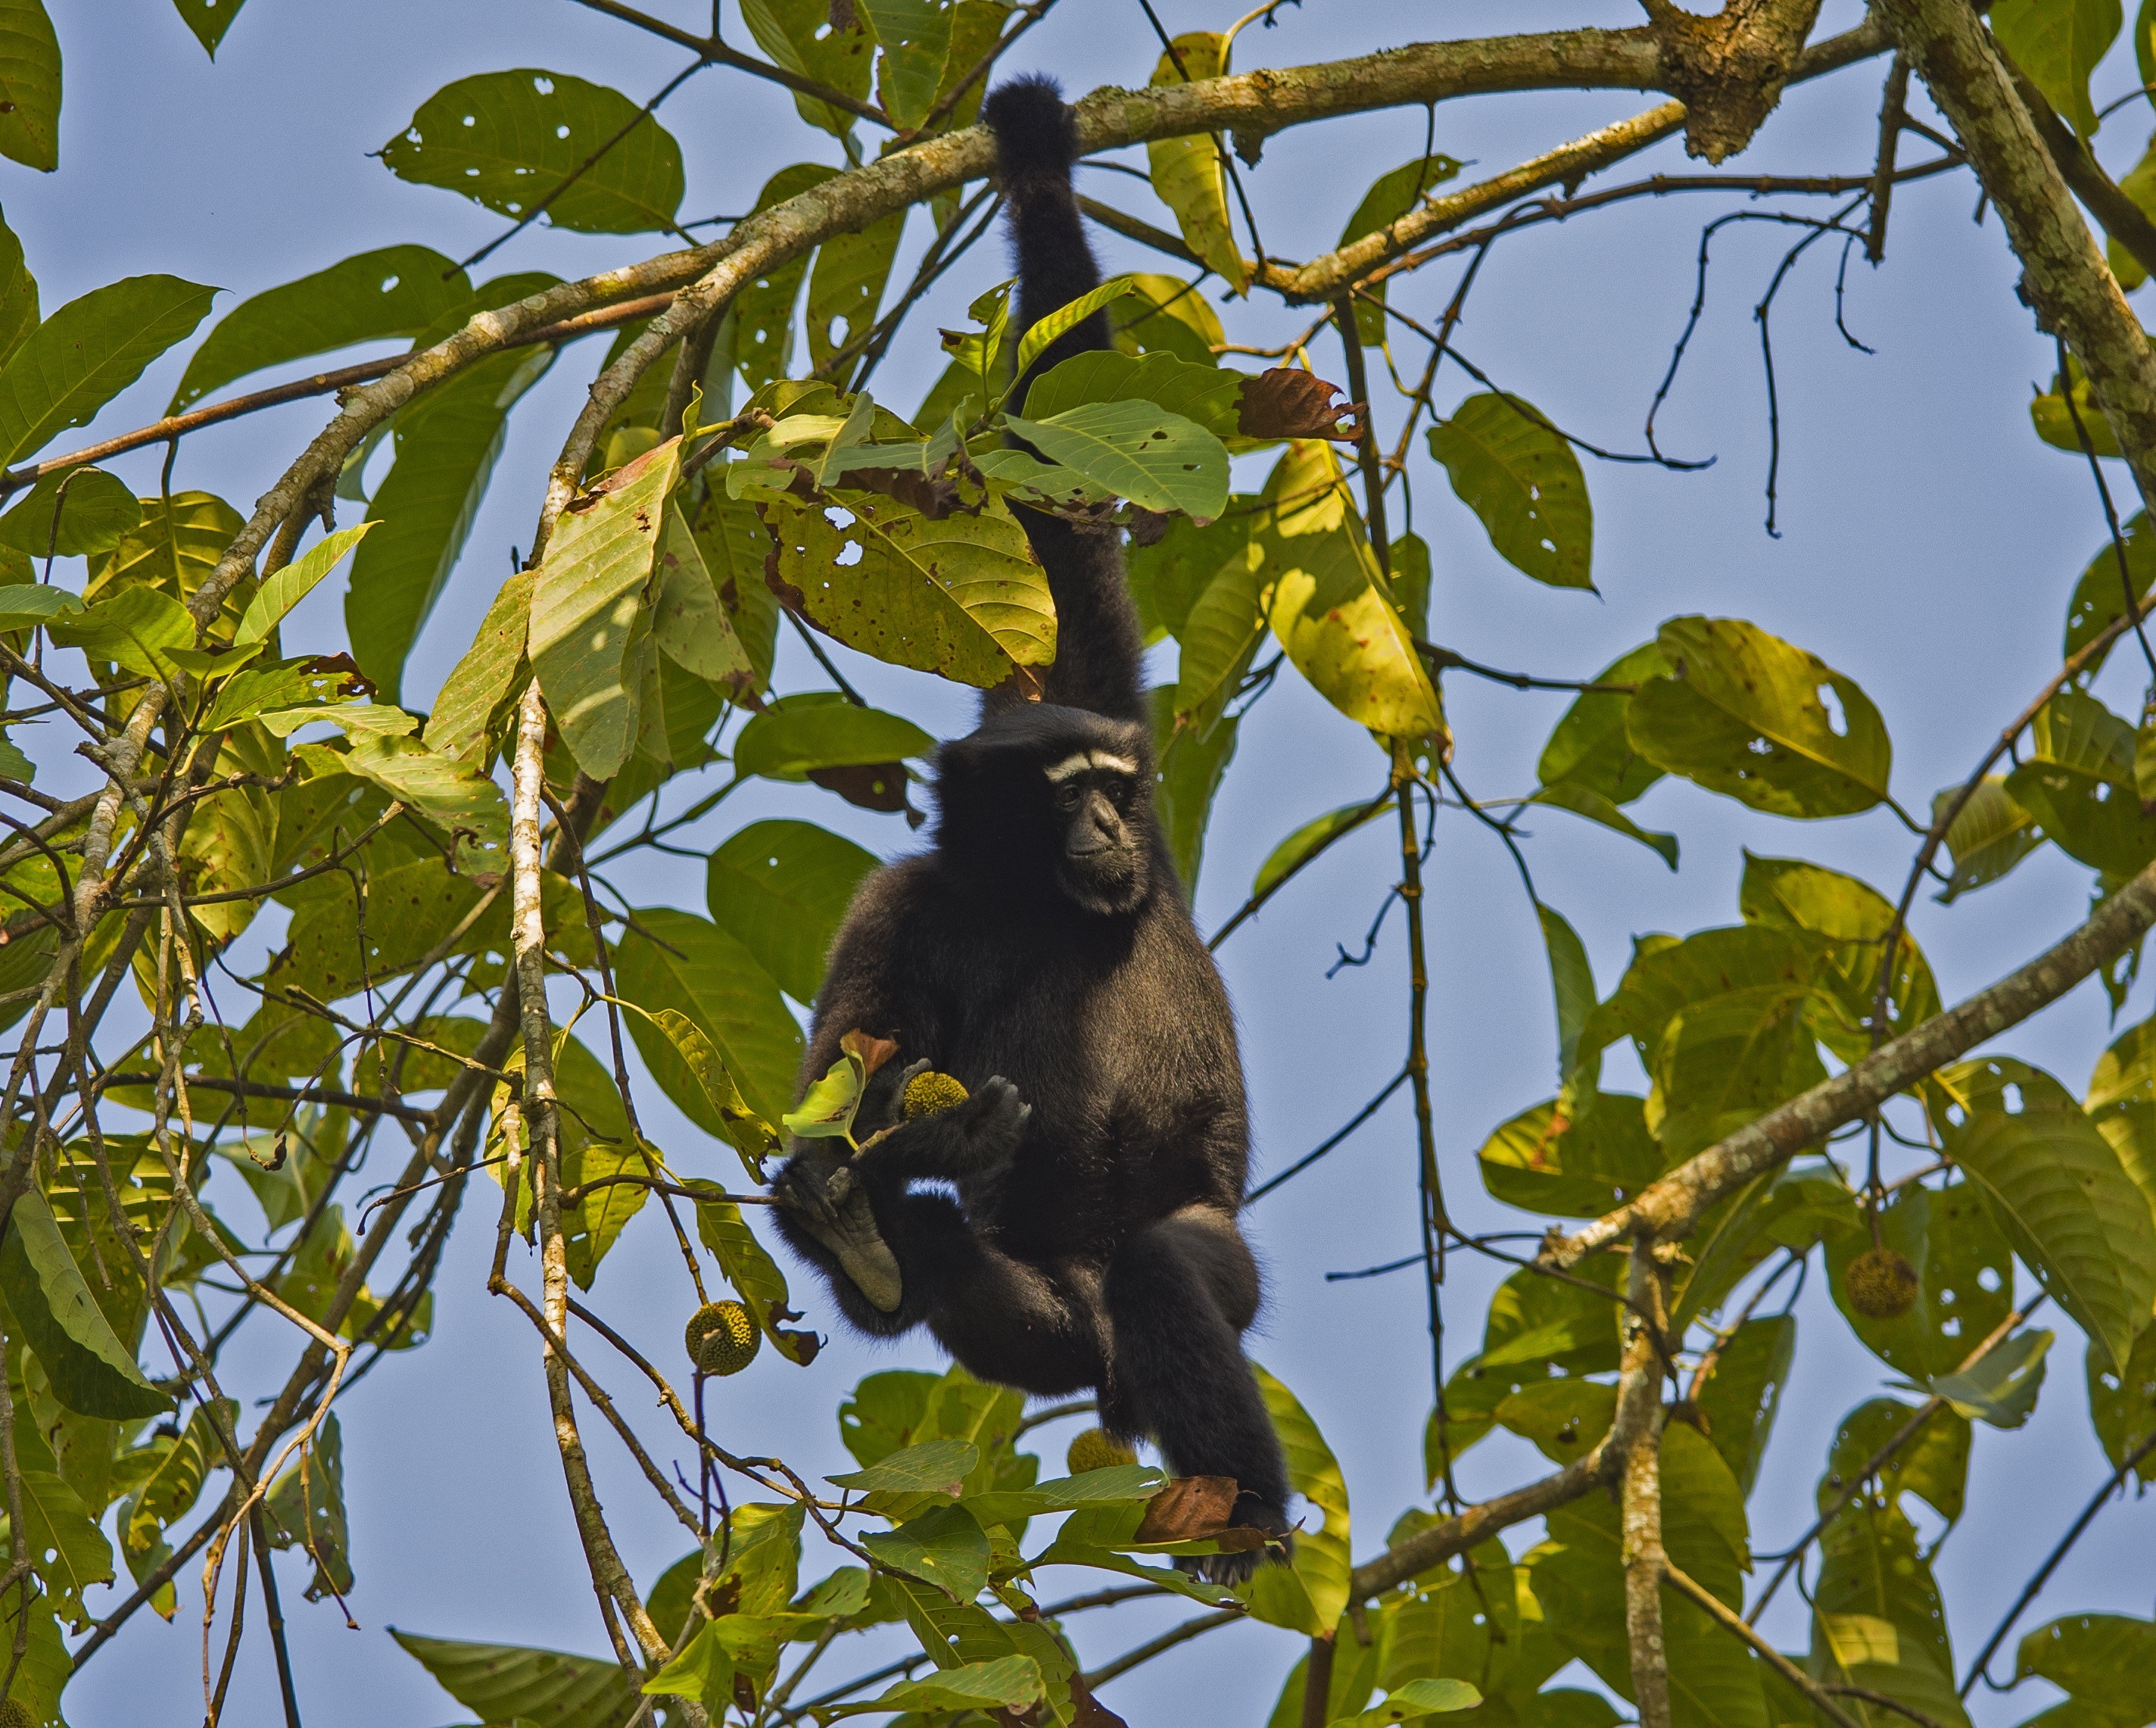 Considered one of the most endangered primates in the world, the western hoolock gibbon is precariously hanging on to survival in a few protected areas in India's Northeast. Photo: Dhritiman Mukherjee